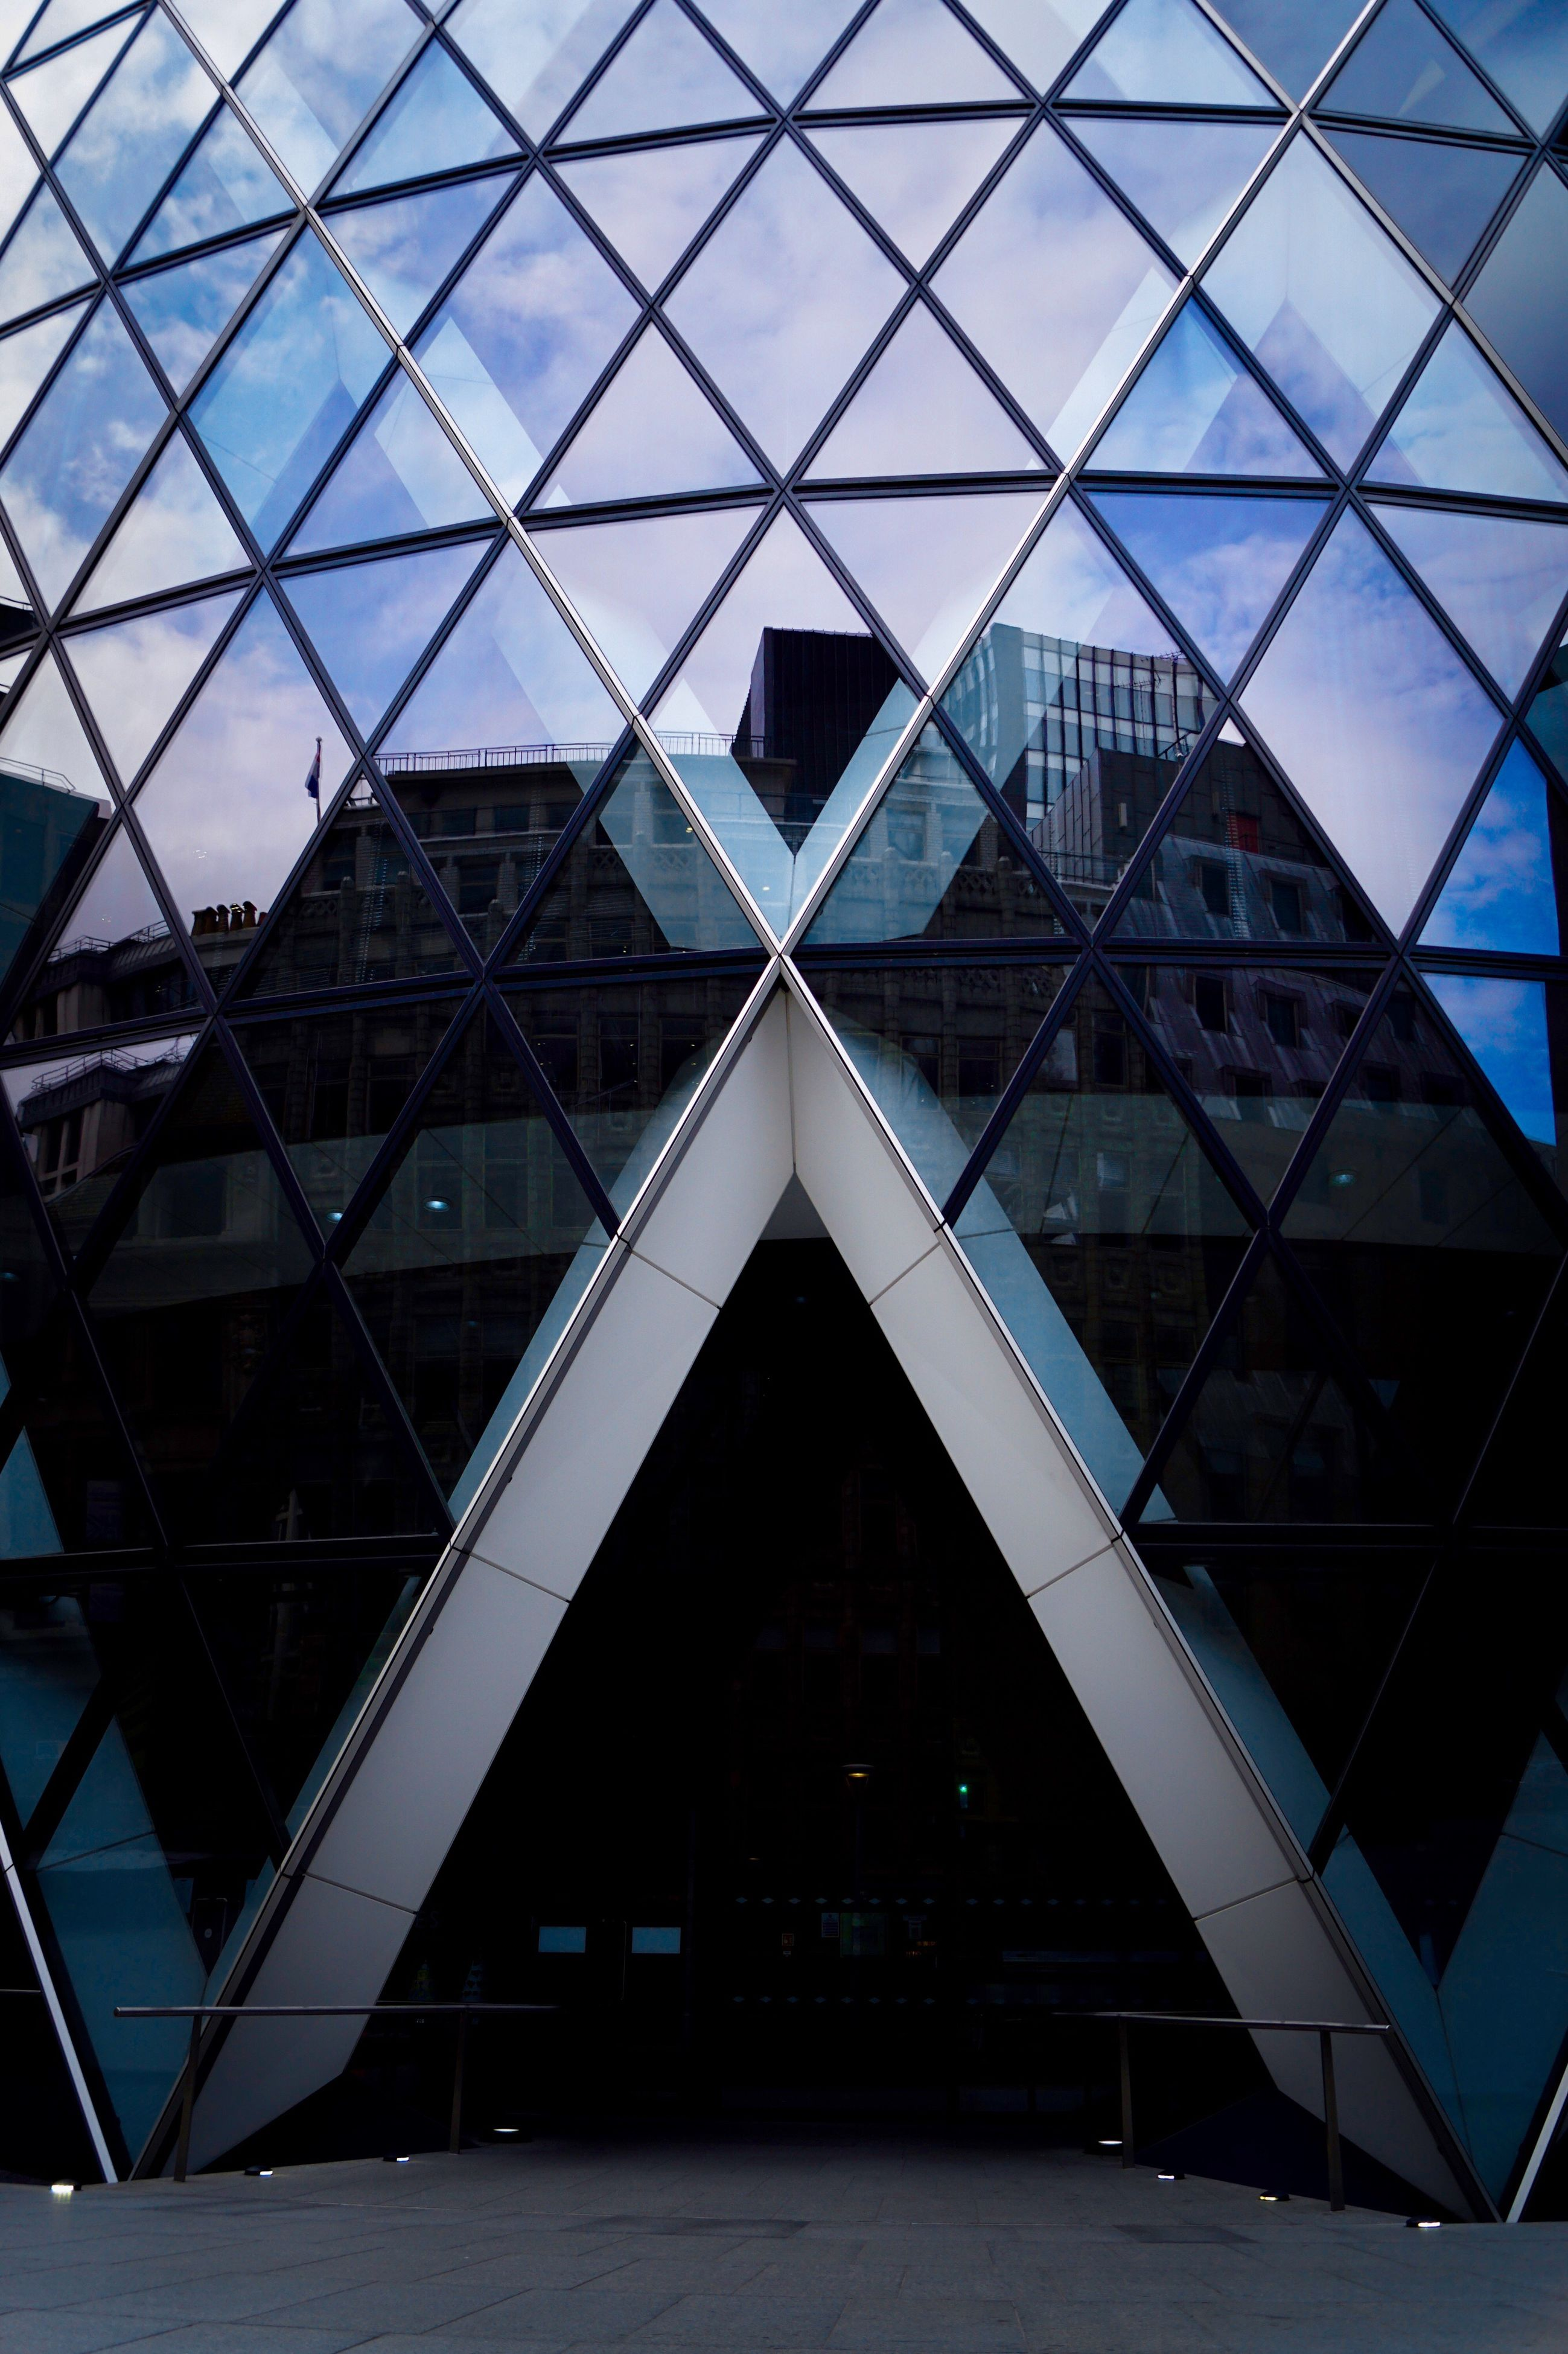 architecture, built structure, triangle shape, window, indoors, building exterior, no people, day, modern, sky